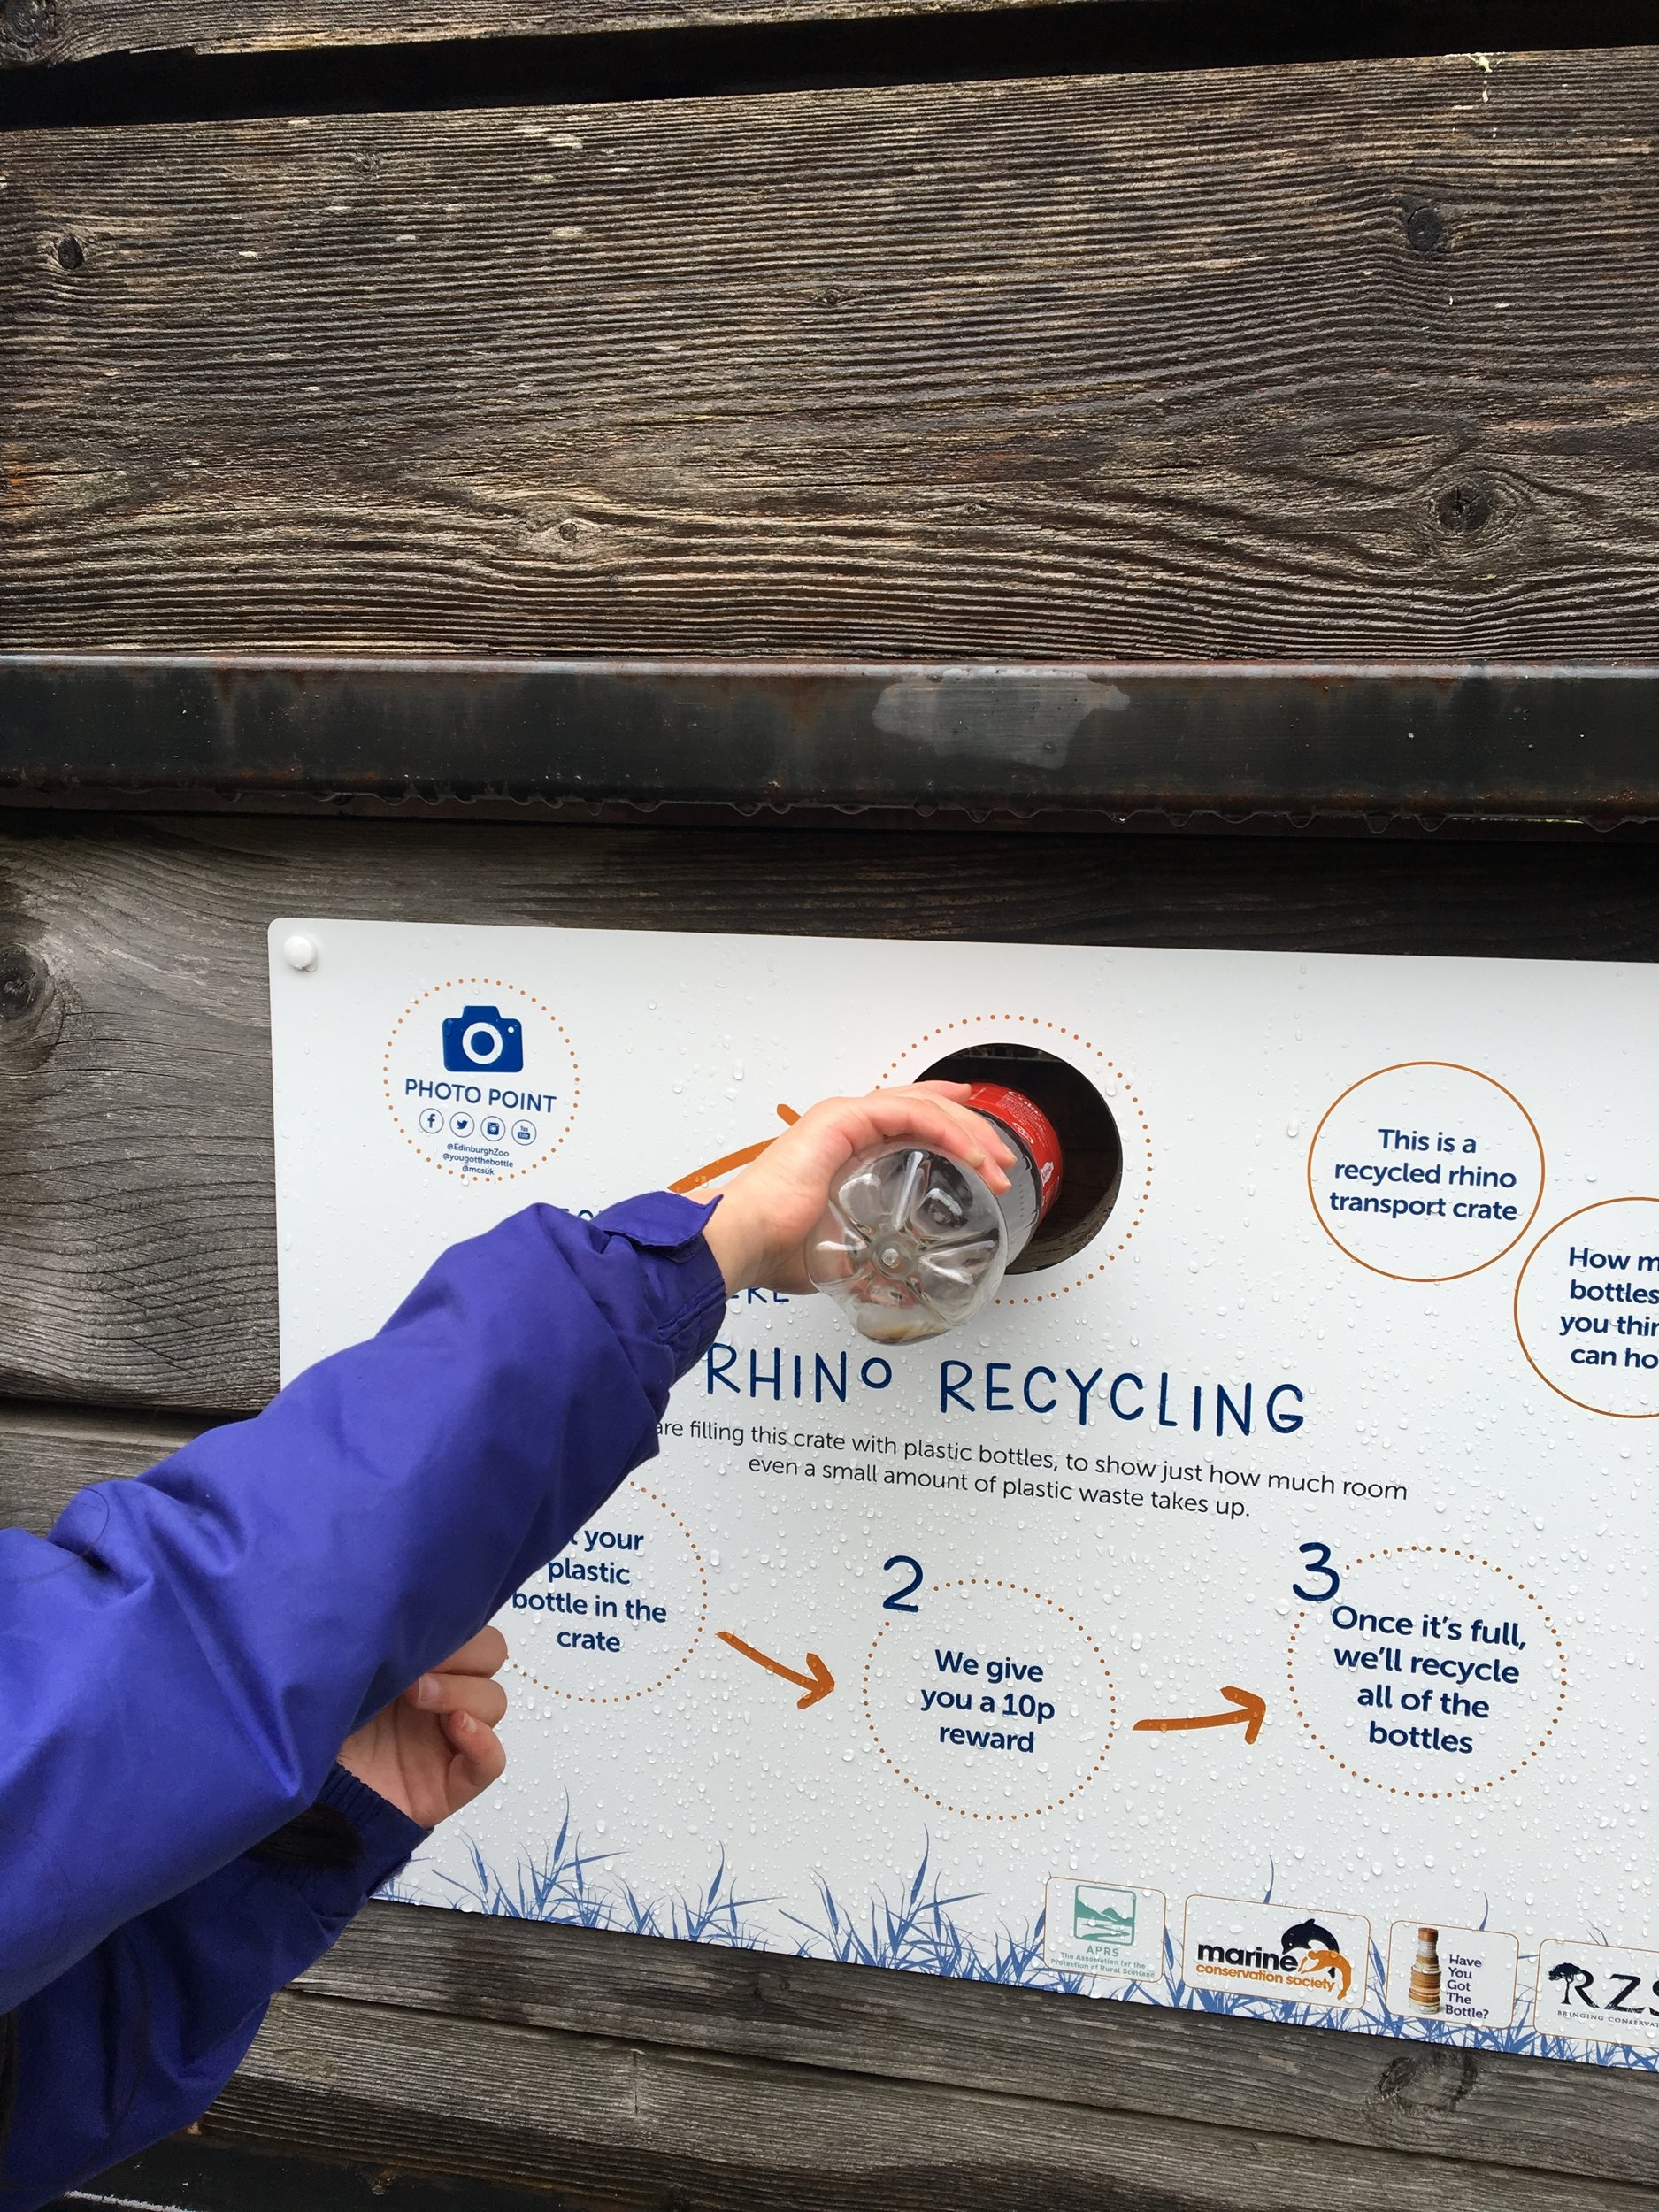 Our recycling point with more information of the bottle deposit return system.